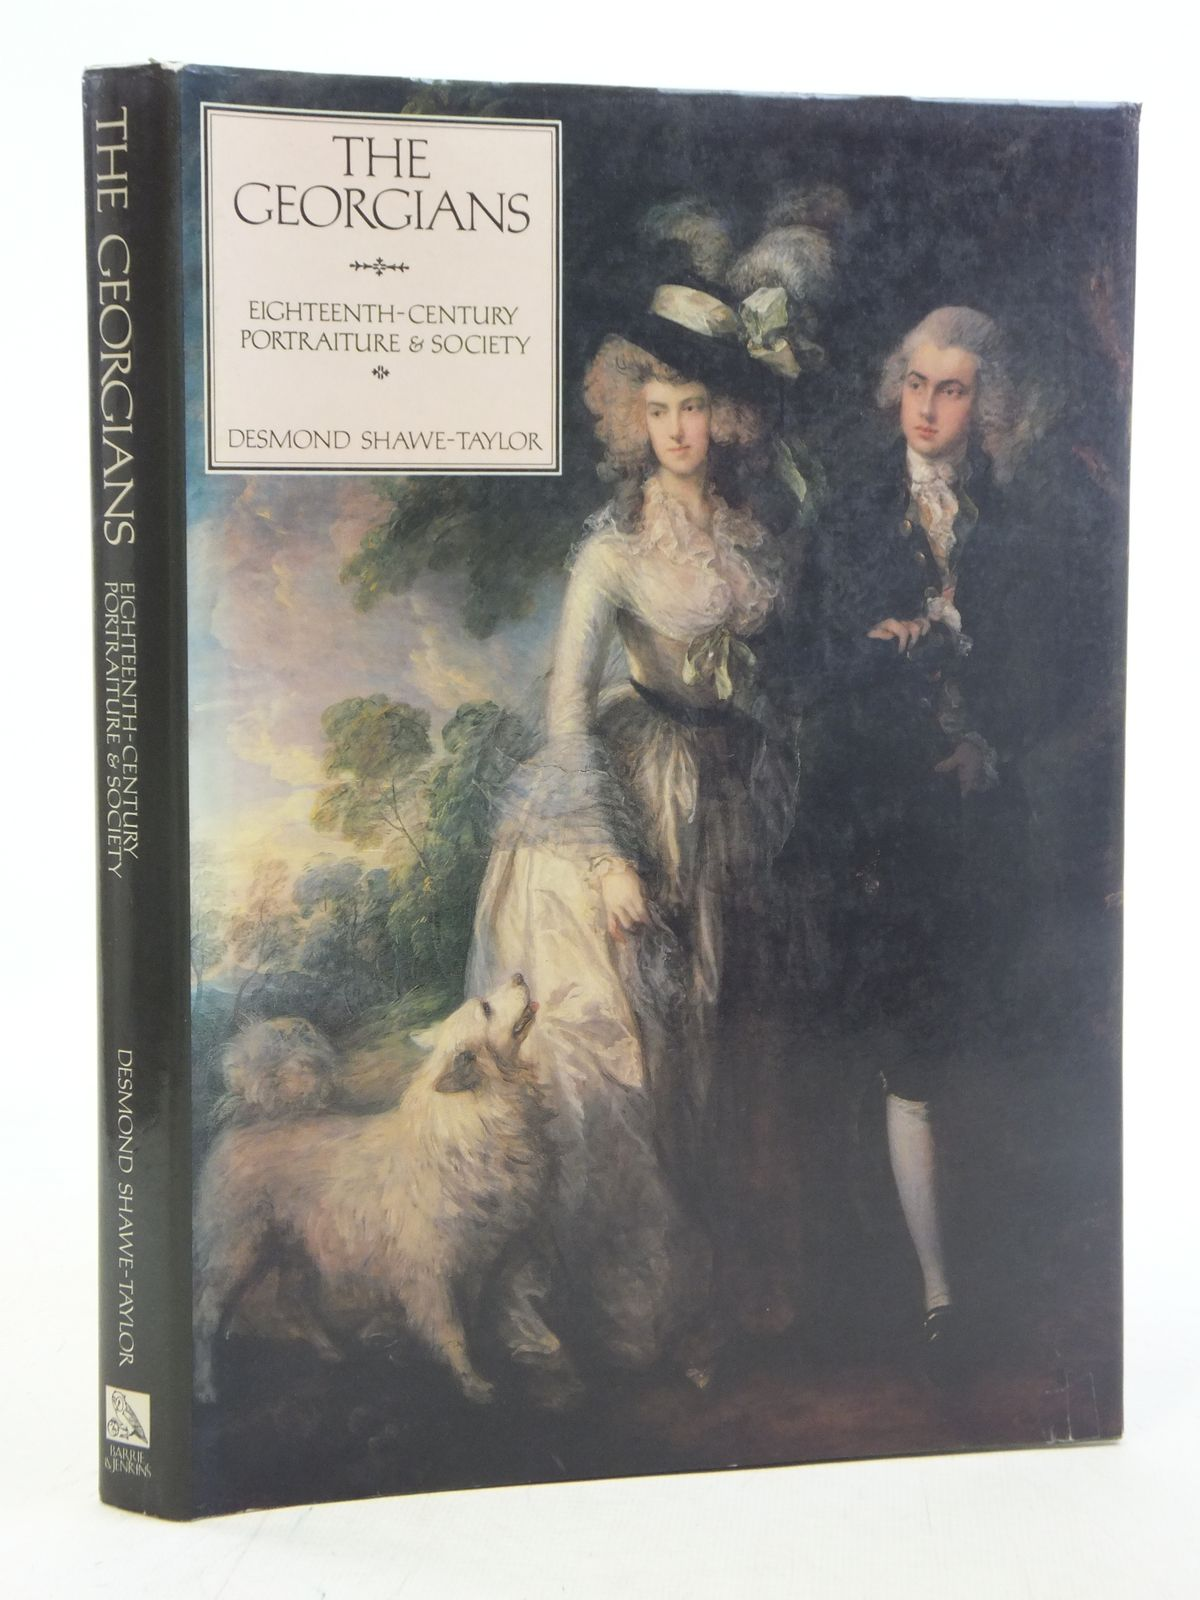 Photo of THE GEORGIANS EIGHTEENTH-CENTURY PORTRAITURE & SOCIETY written by Shawe-Taylor, Desmond published by Barrie & Jenkins (STOCK CODE: 2114954)  for sale by Stella & Rose's Books